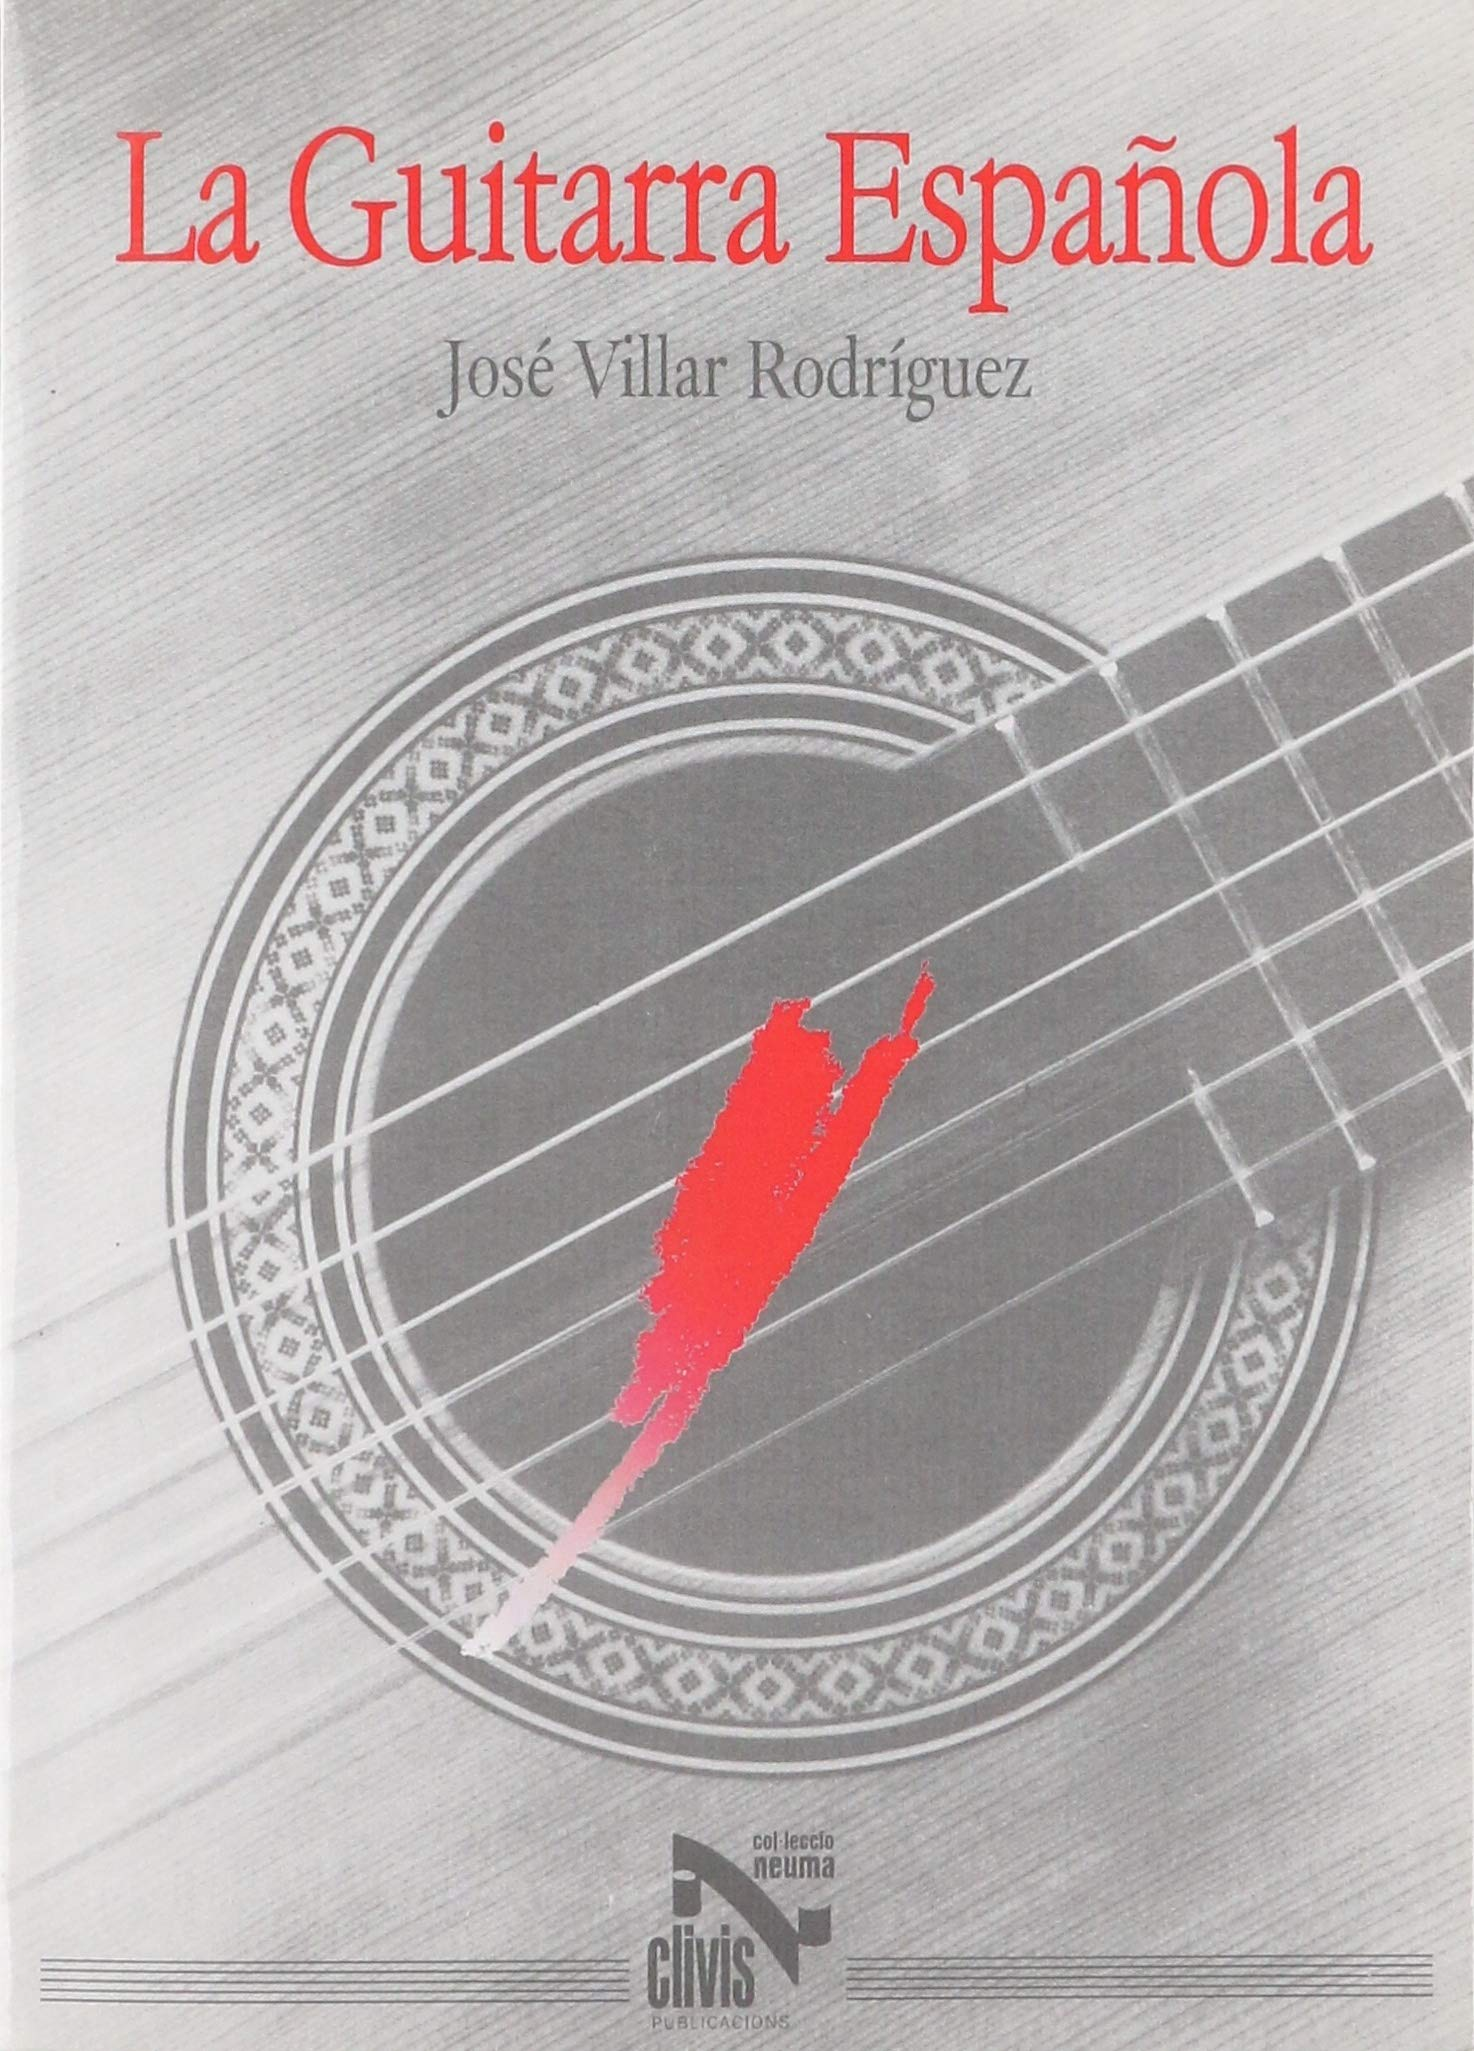 La Guitarra Española: Amazon.es: Unknown: Libros